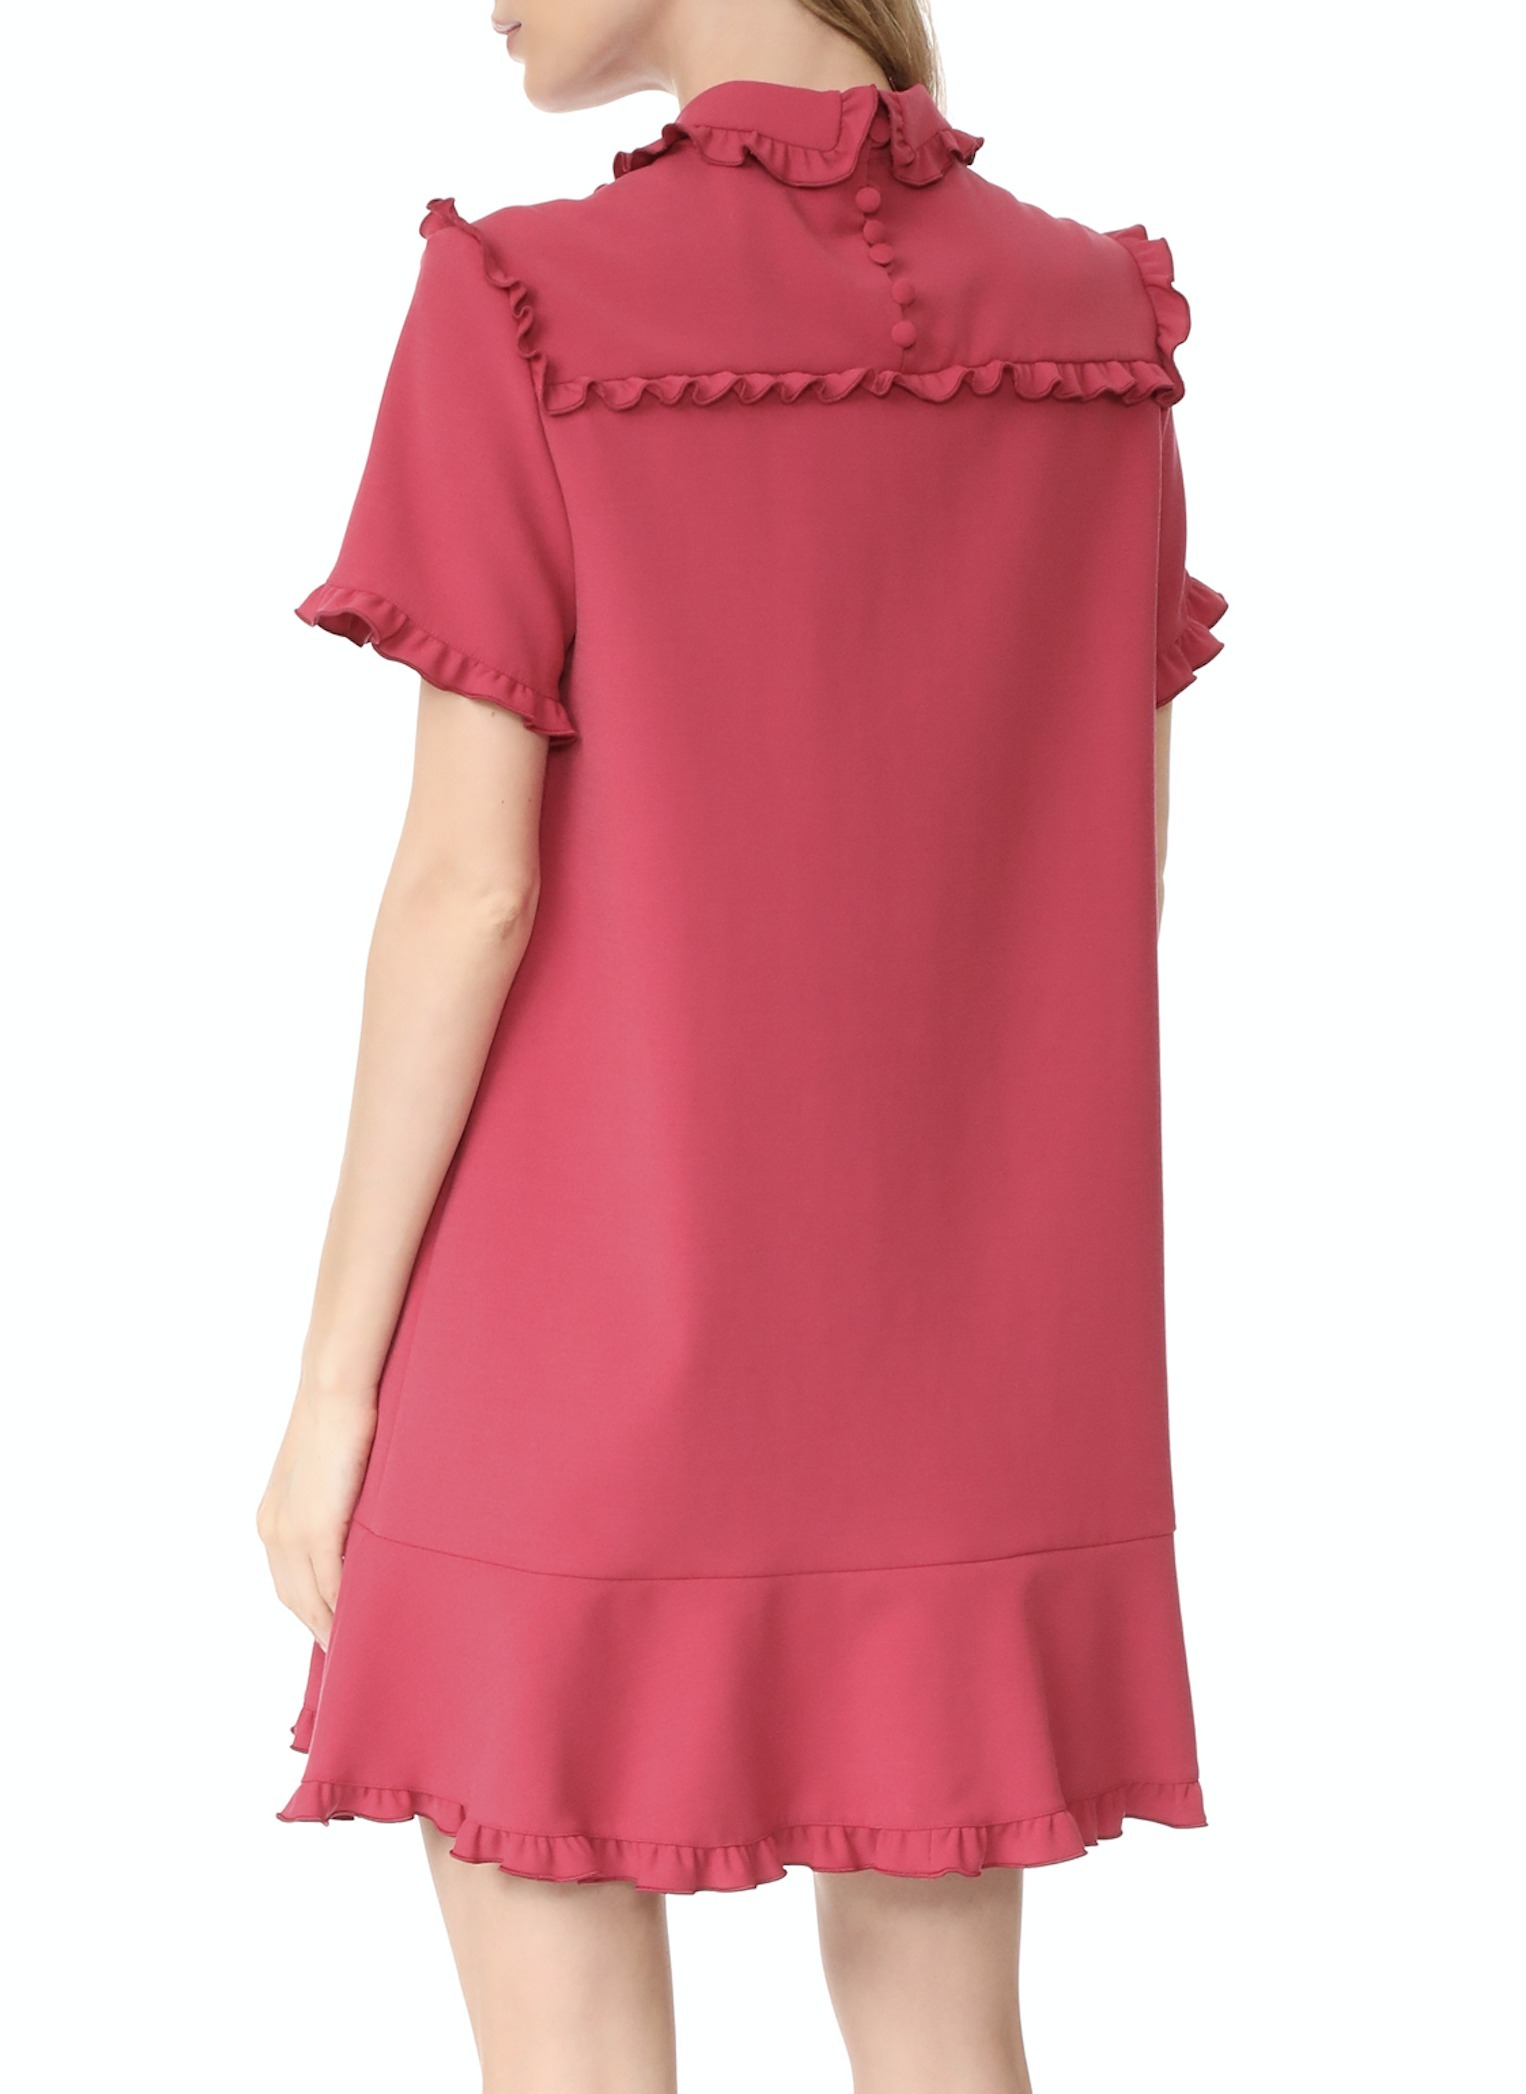 17-18AW RV070 RUFFLED STRETCH CREPE MINI DRESS